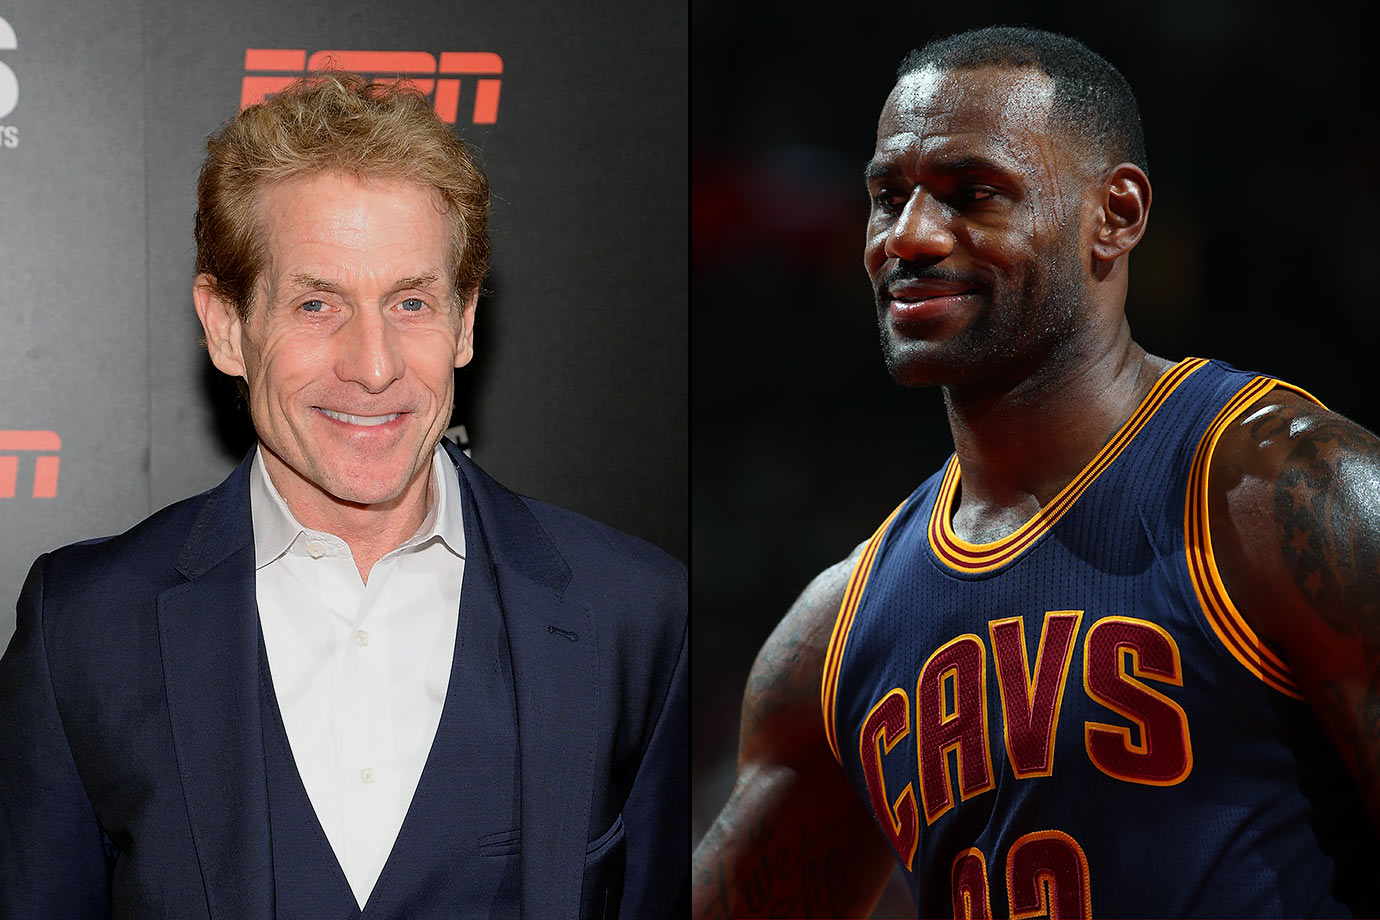 Skip Bayless will make sure this team never wins the Finals, and he does not seem like the kind of person you want to make an enemy out of.